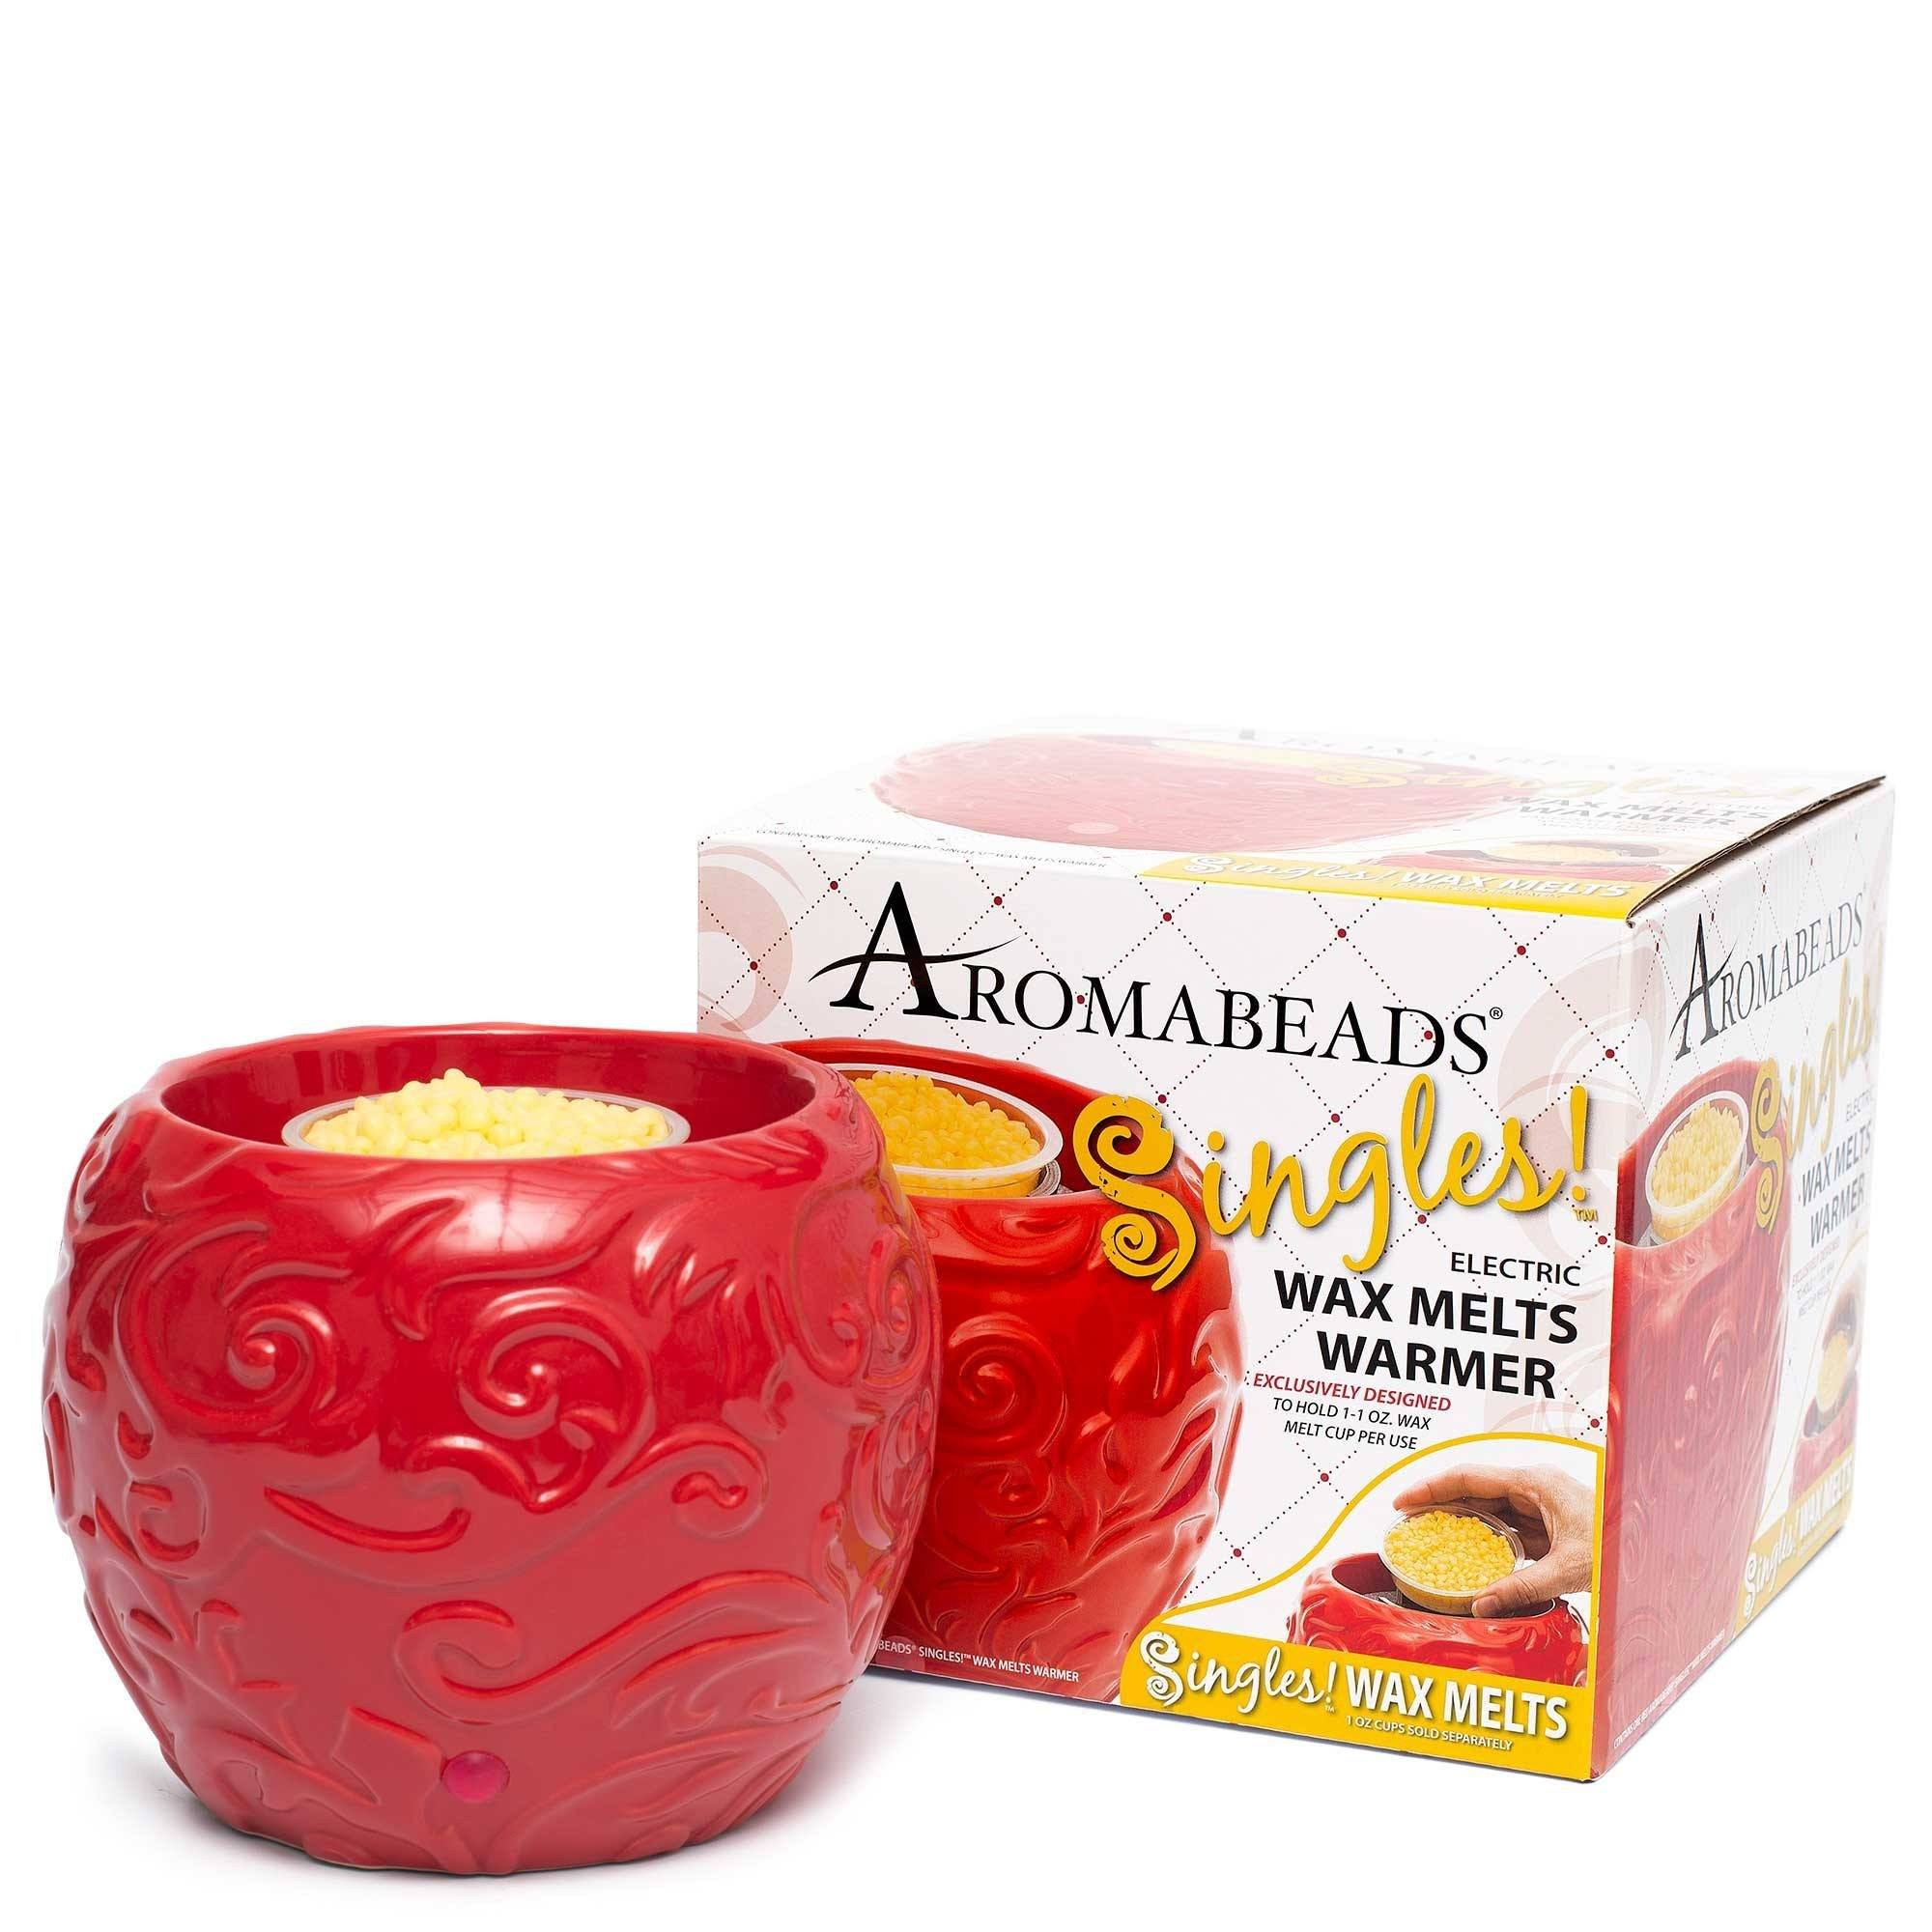 Aromabeads Singles FREE SAMPLE DUO Scented Wax Melts Melts Candlemart.com $ 3.00